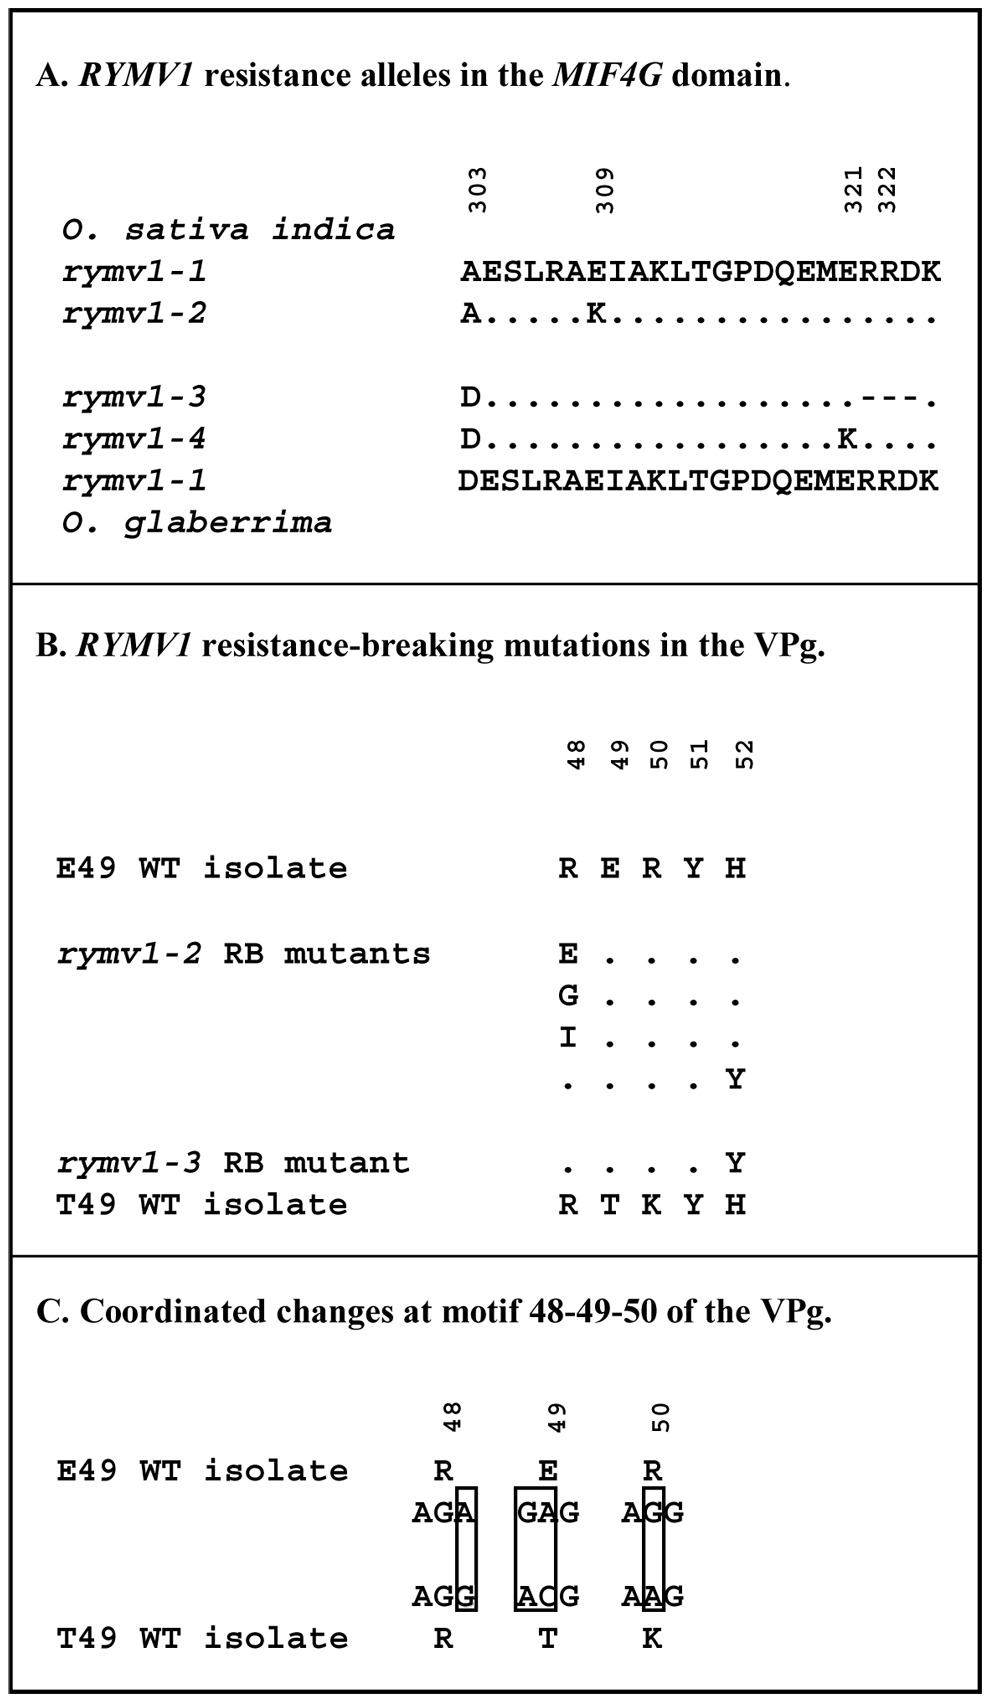 Genetic characteristics of the plant and virus material used in the study.